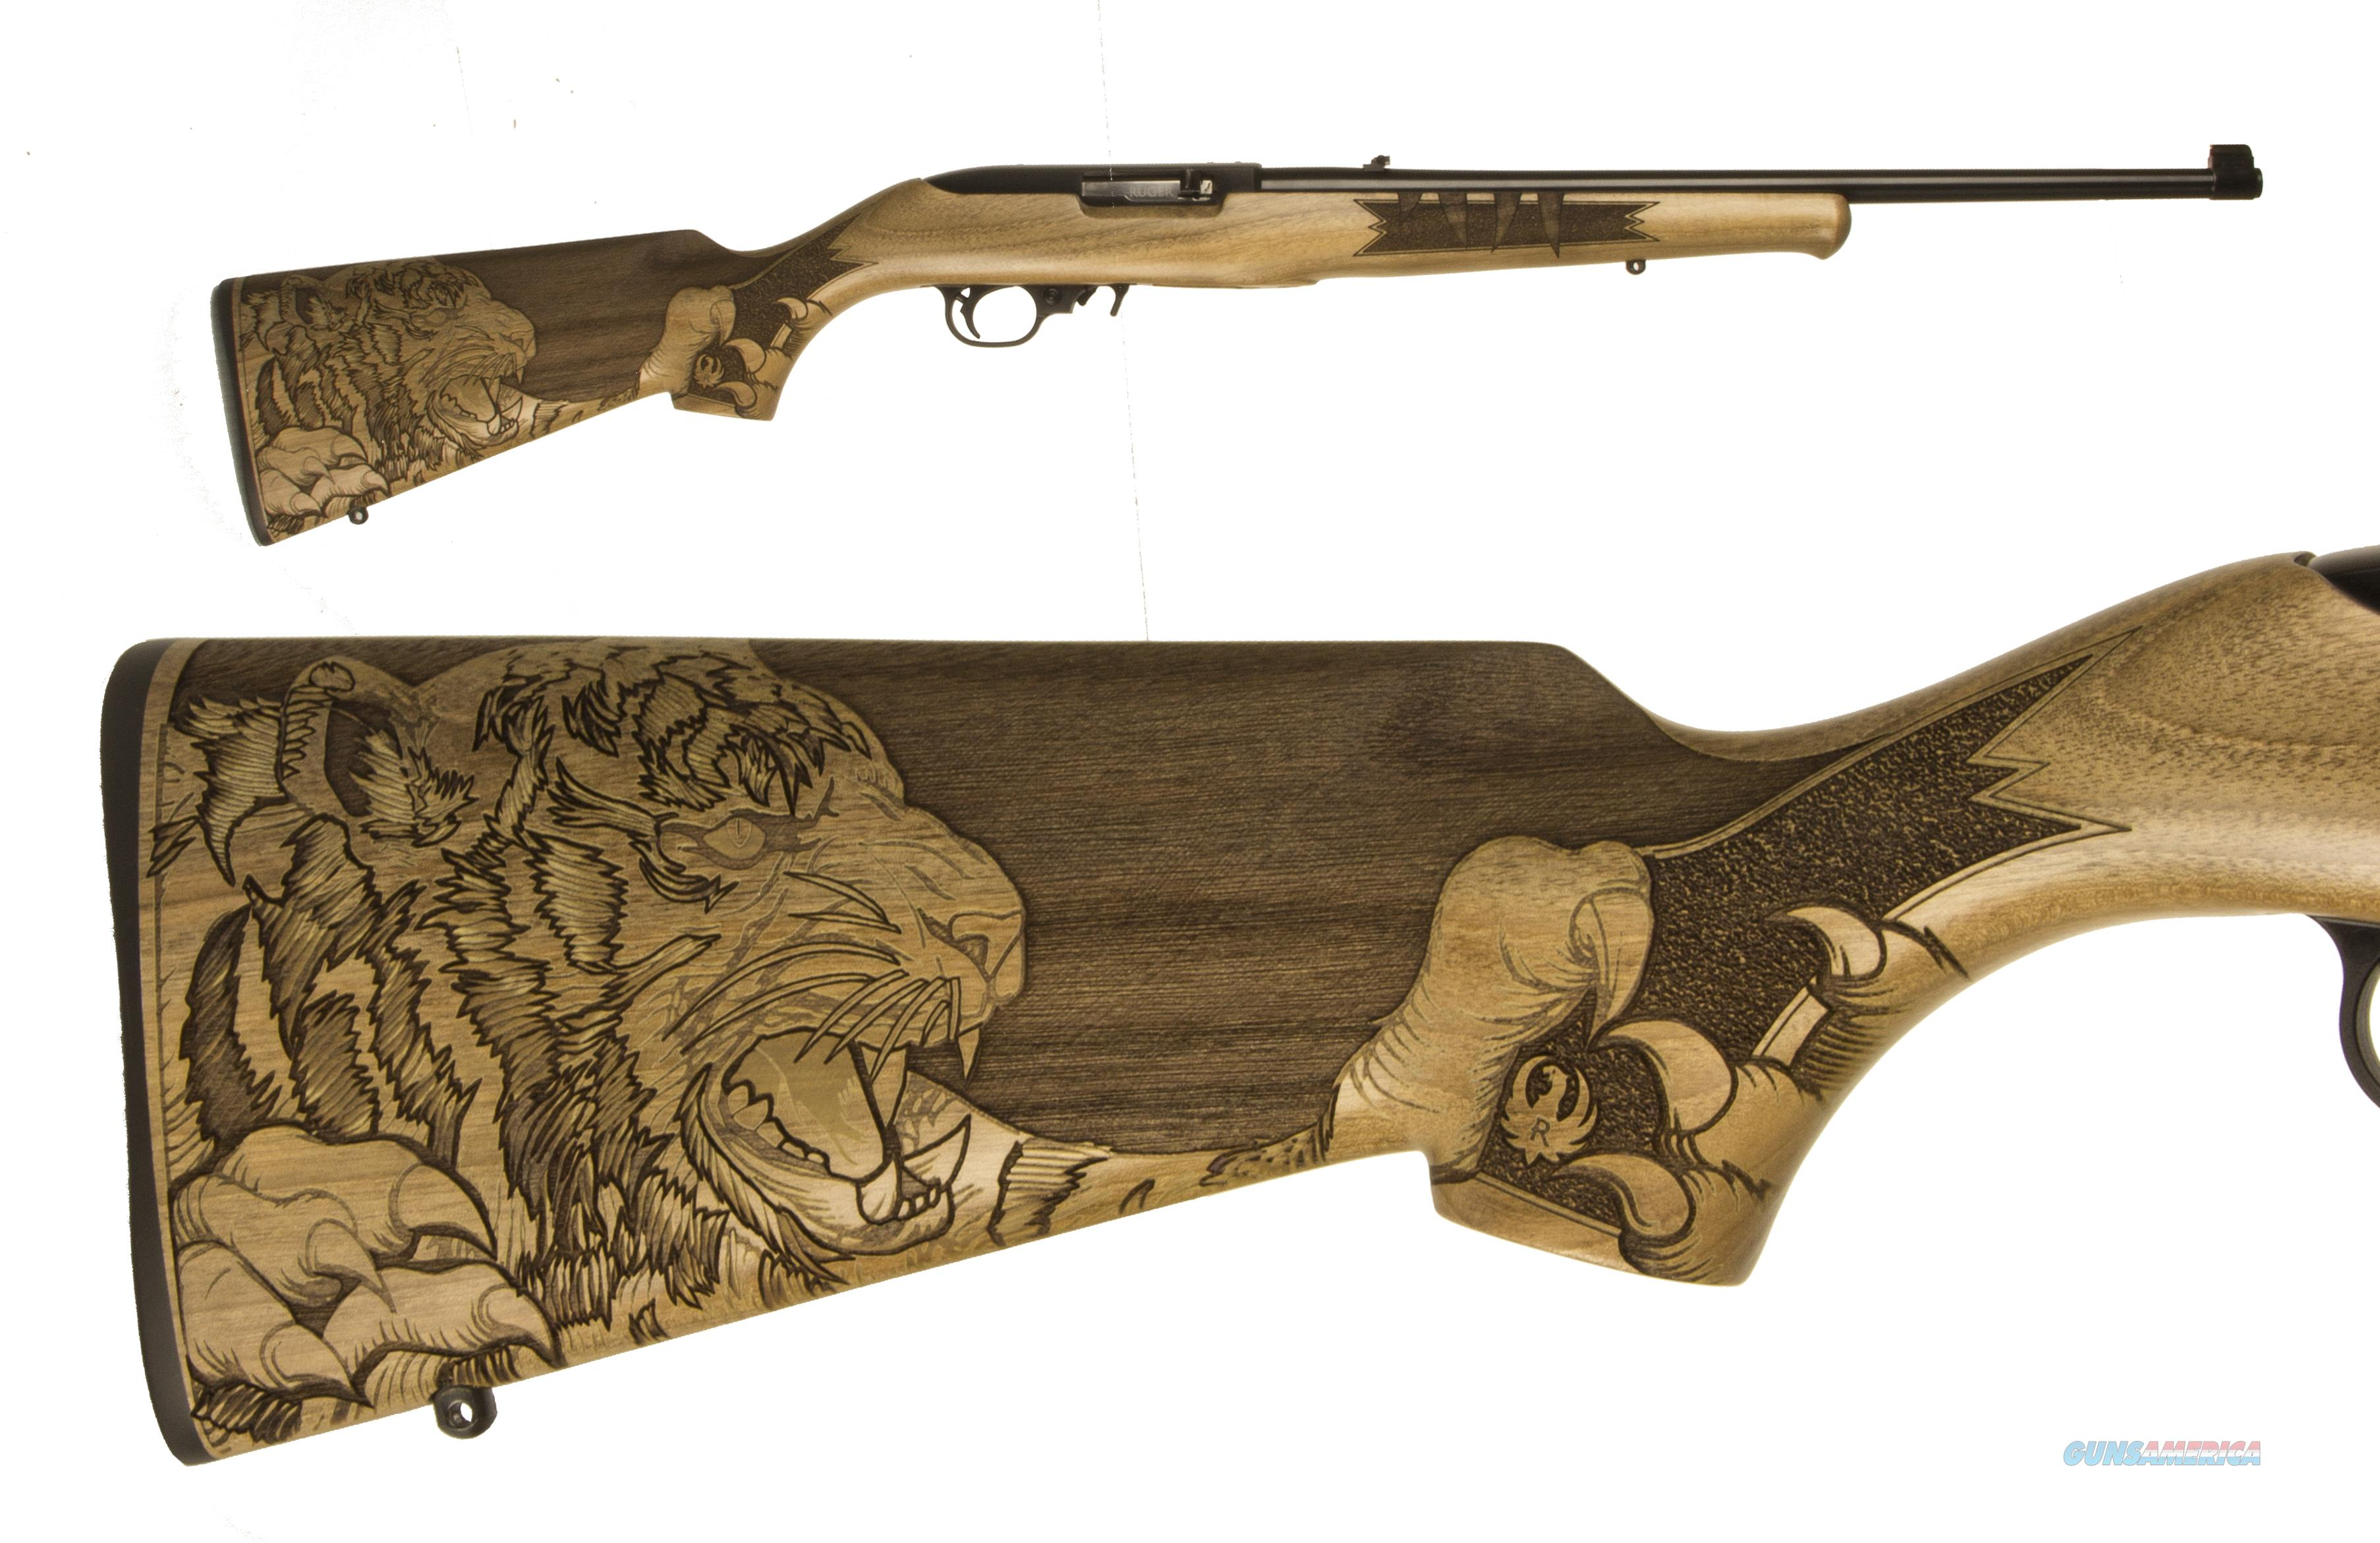 Ruger 10/22 TIGER 22LR BL/WD 18 21146 ENGRAVED TIGER STOCK  Guns > Rifles > Ruger Rifles > 10-22